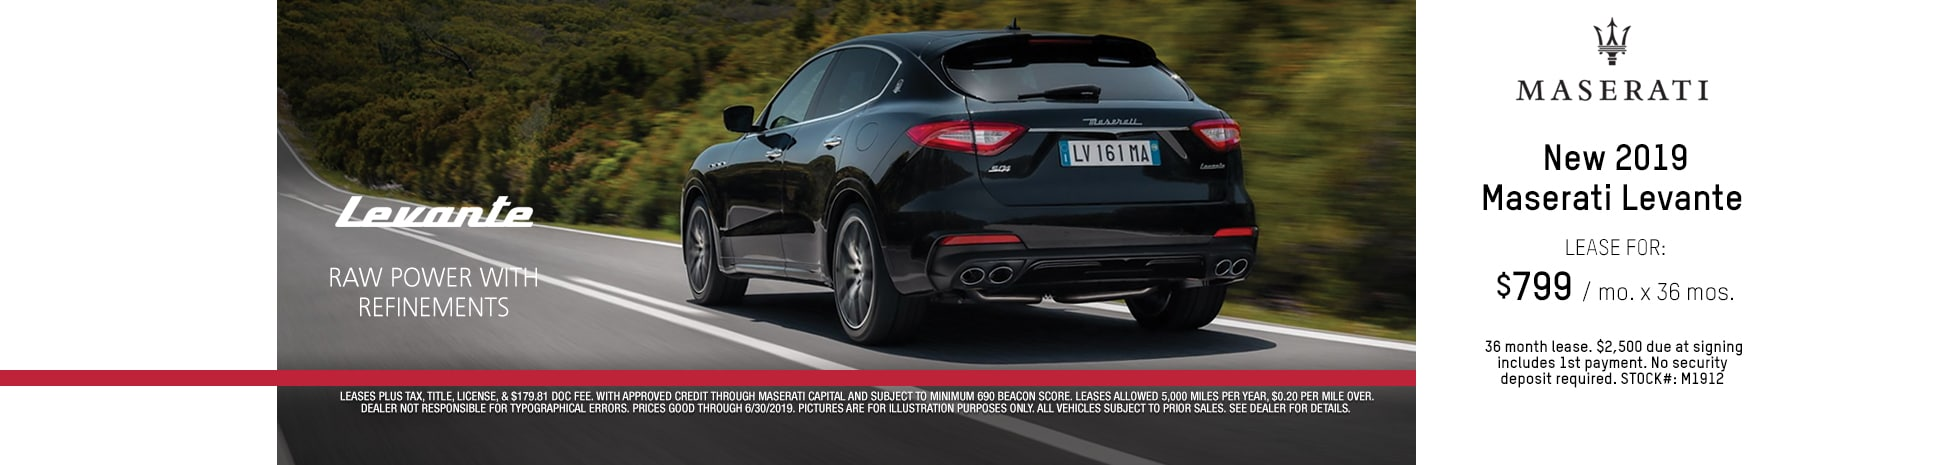 2019 Maserati Levante Lease Deal